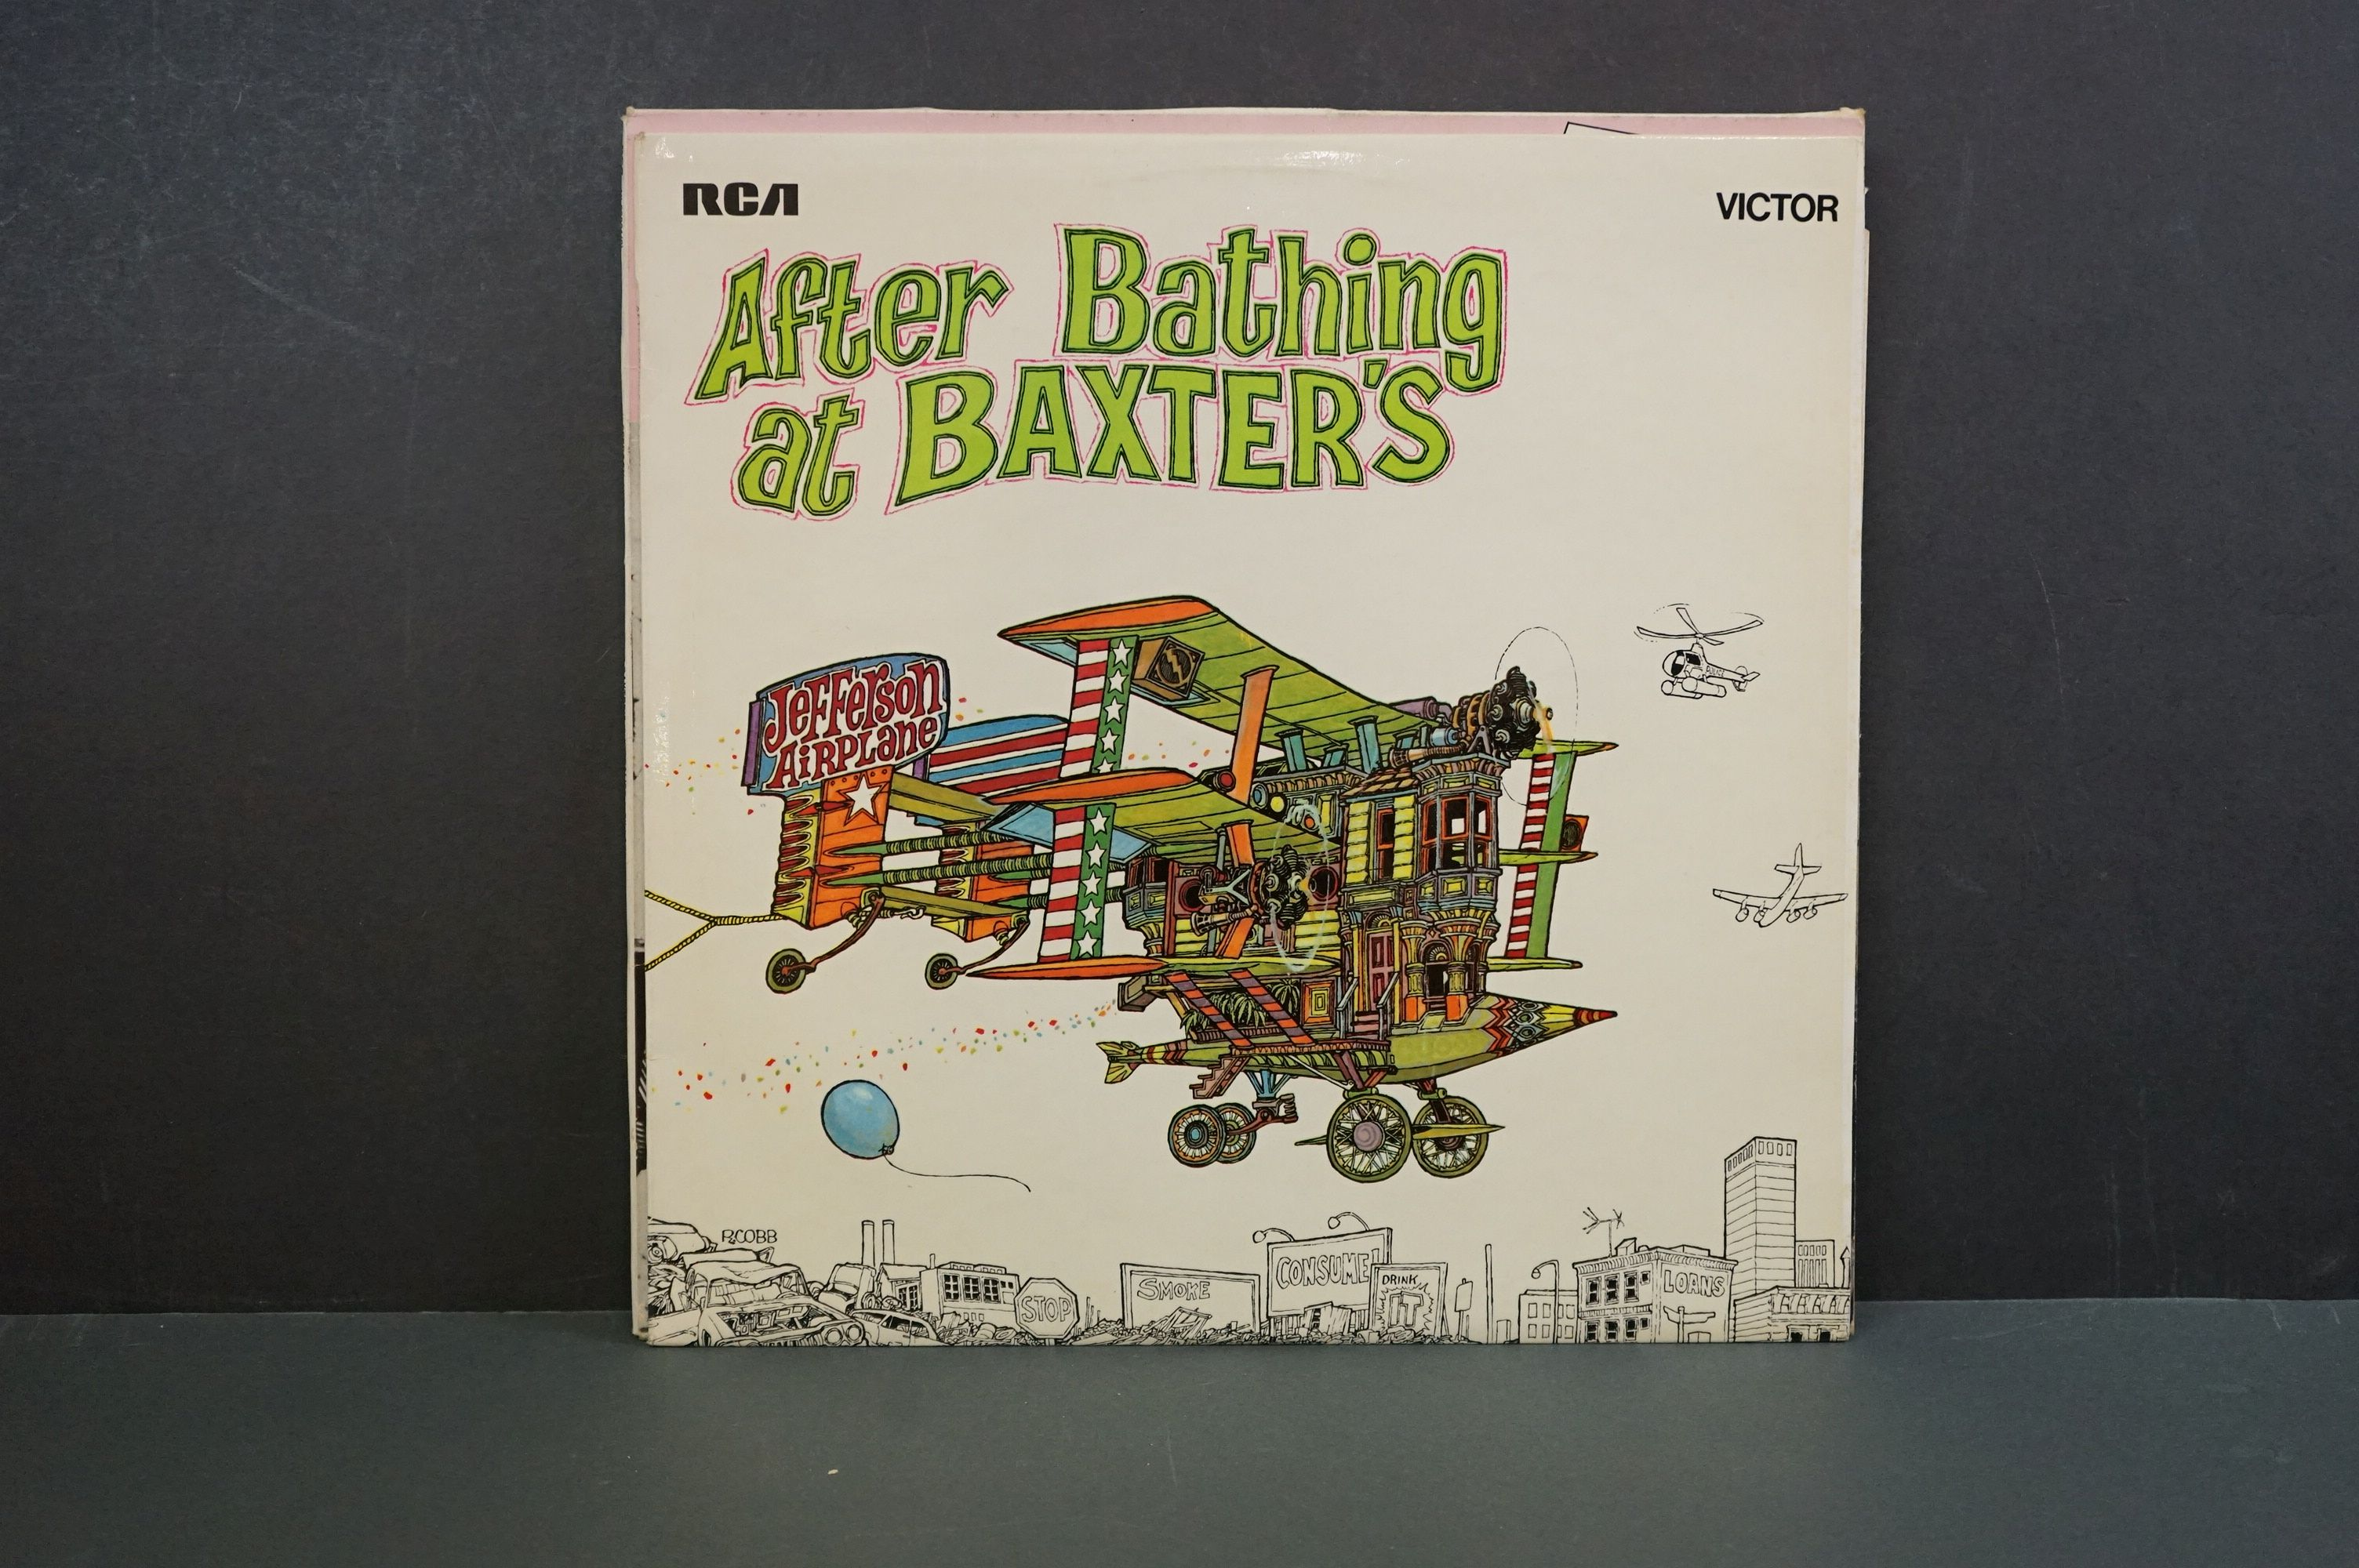 Vinyl - 10 Jefferson Airplane LPs to include Surrealistia Pillow / After Bathing at Baxter's (89301) - Image 13 of 16